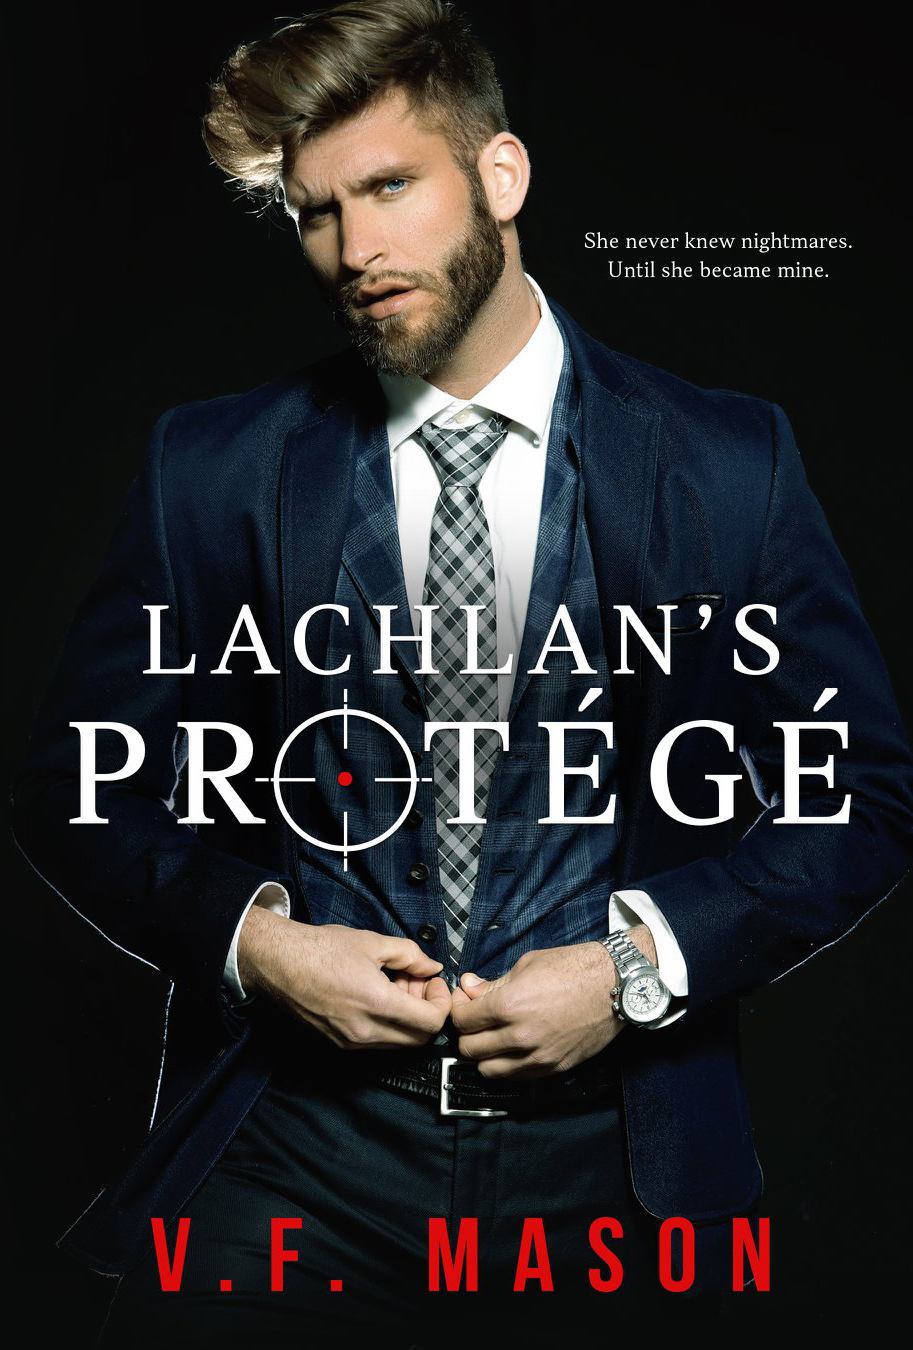 LACHLAN'S PROTEGE